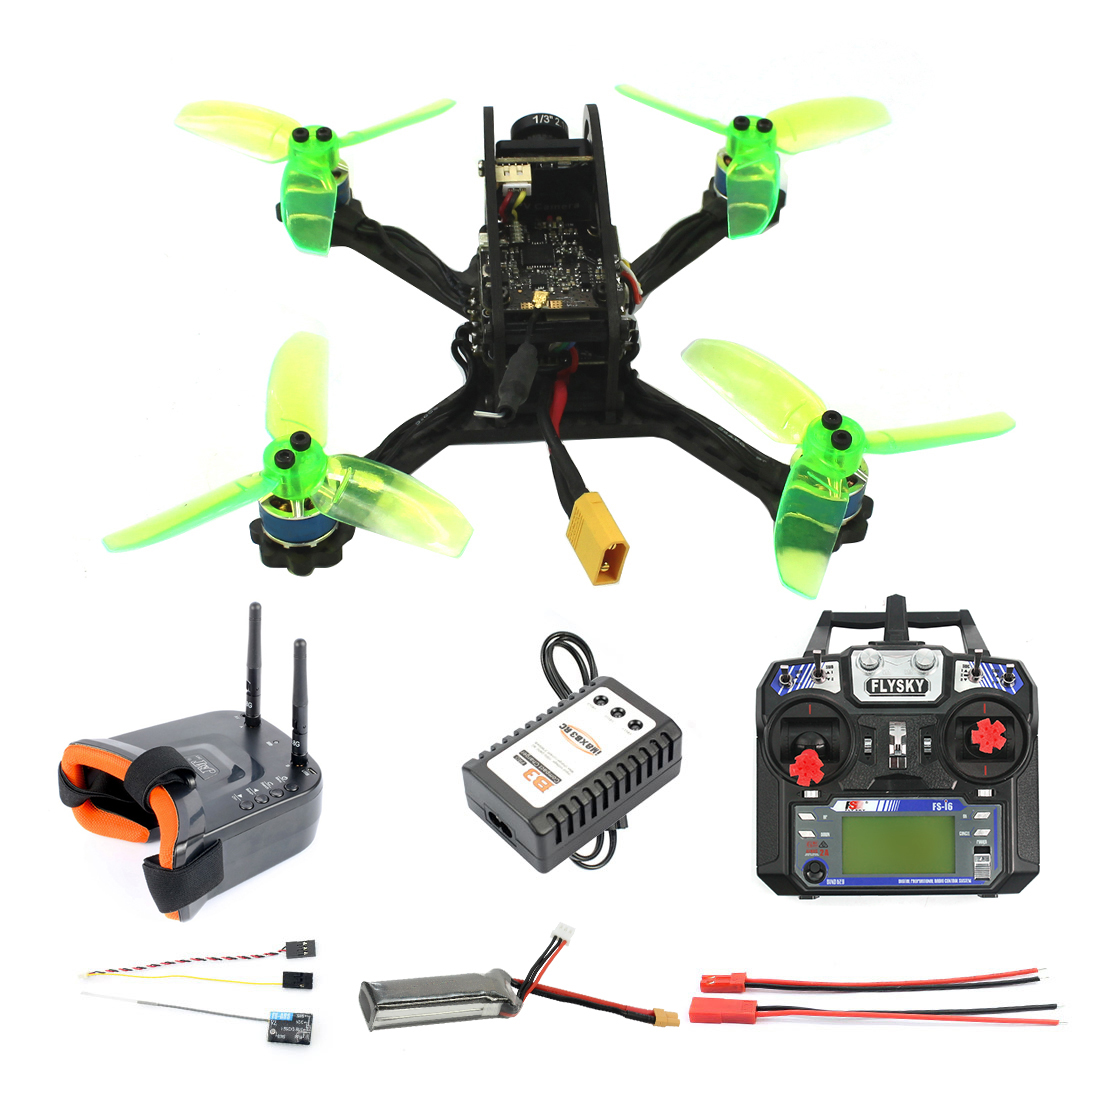 RTF FPV Racing <font><b>Drone</b></font> 135mm Mini F3 OSD 2S RC Quadcopter 10A 7500KV <font><b>Brushless</b></font> 2.4G 6ch BNF RTF Combo Set 1200TVL HD Camera image